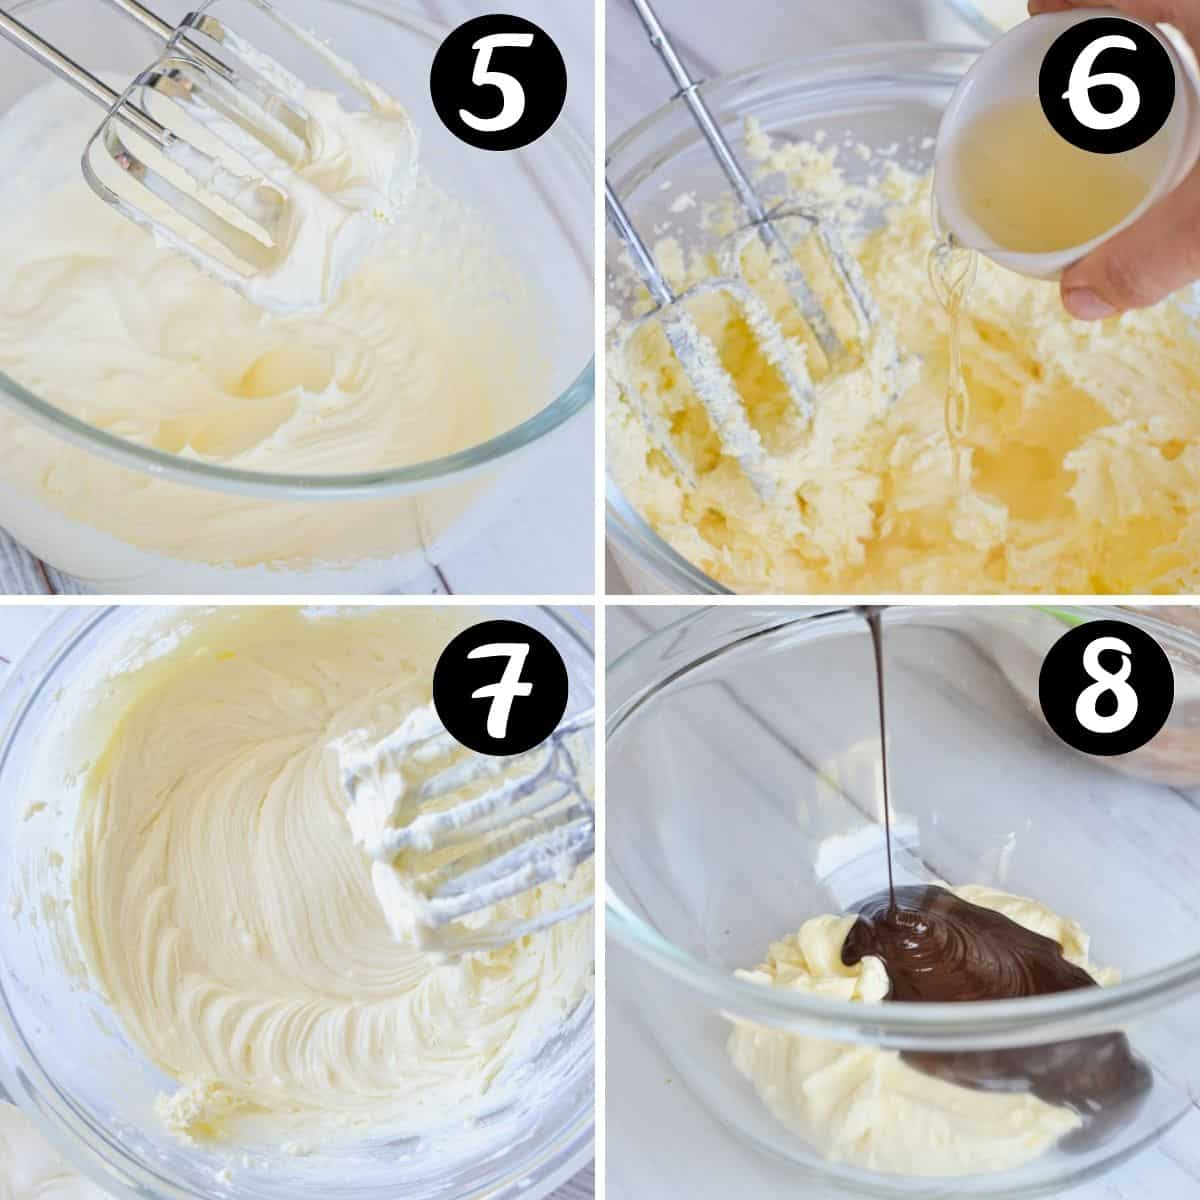 steps showing cream cheese and mascarpone filling being prepared in a glass bowl with melted chocolate